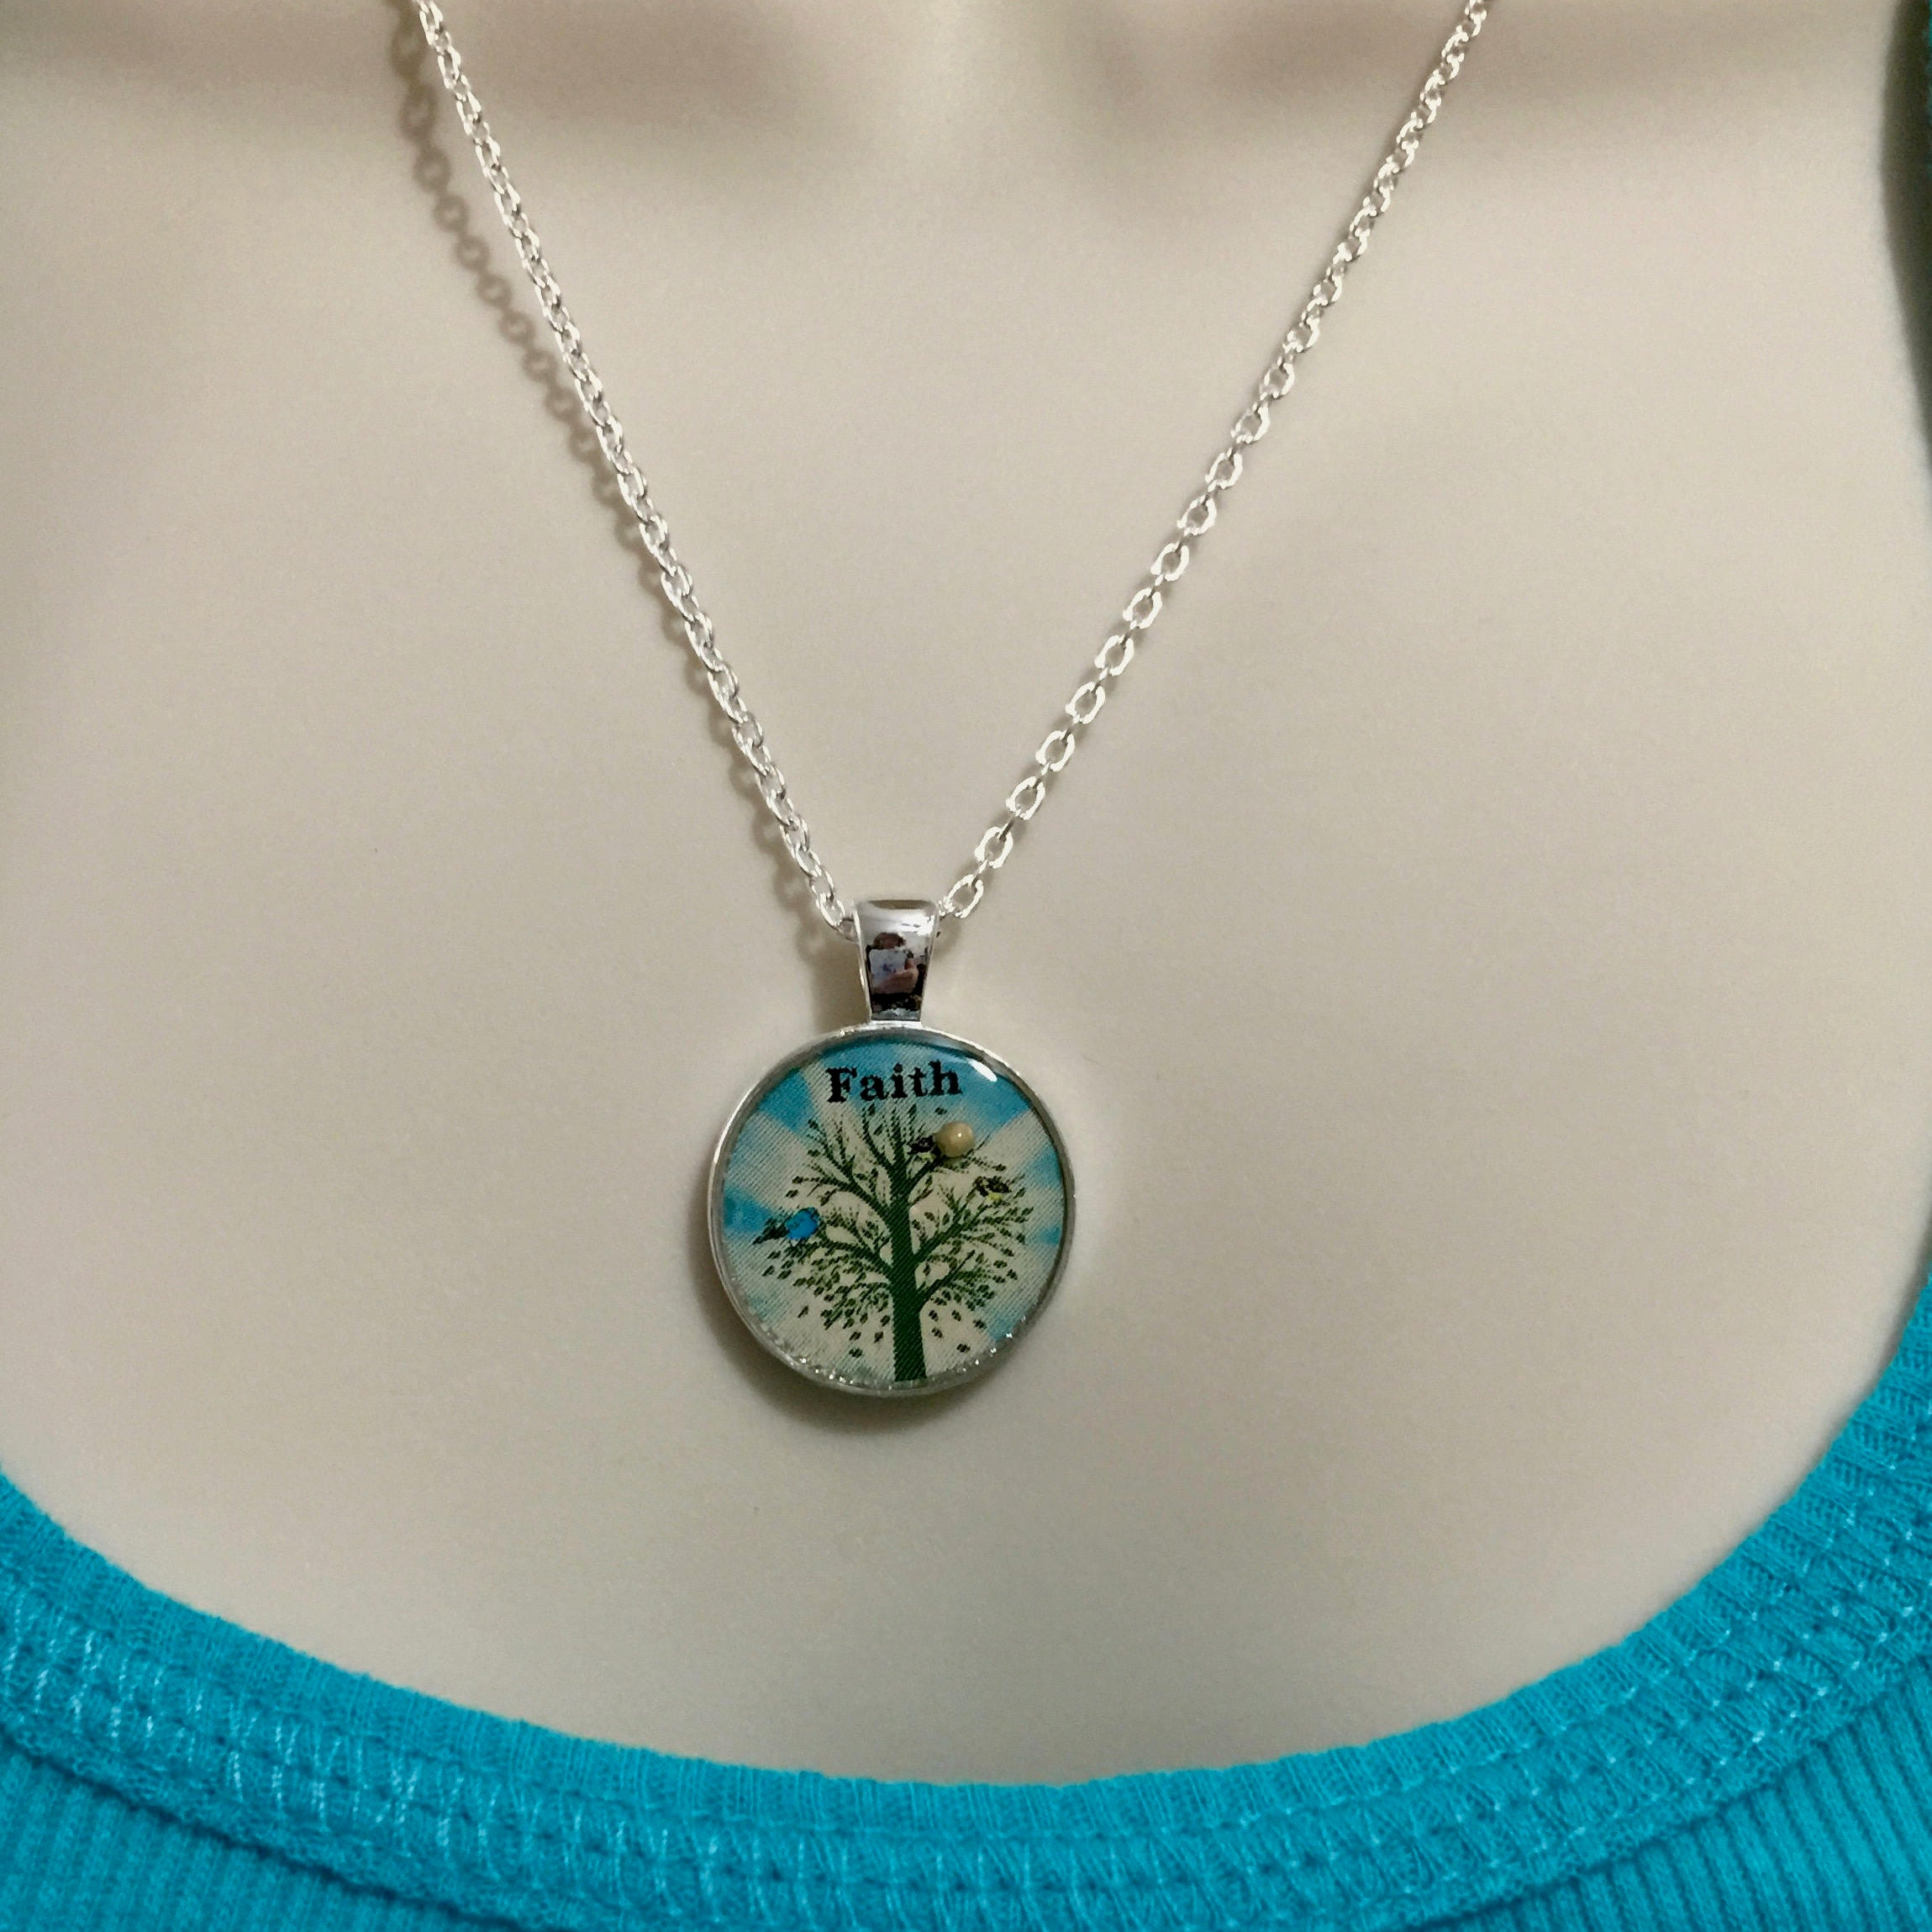 Mustard seed jewelry faith jewelry mustard seed necklace with mustard seed jewelry faith jewelry mustard seed necklace with silver chain light turquoise and silvertree of life necklace matthew 1720 aloadofball Image collections